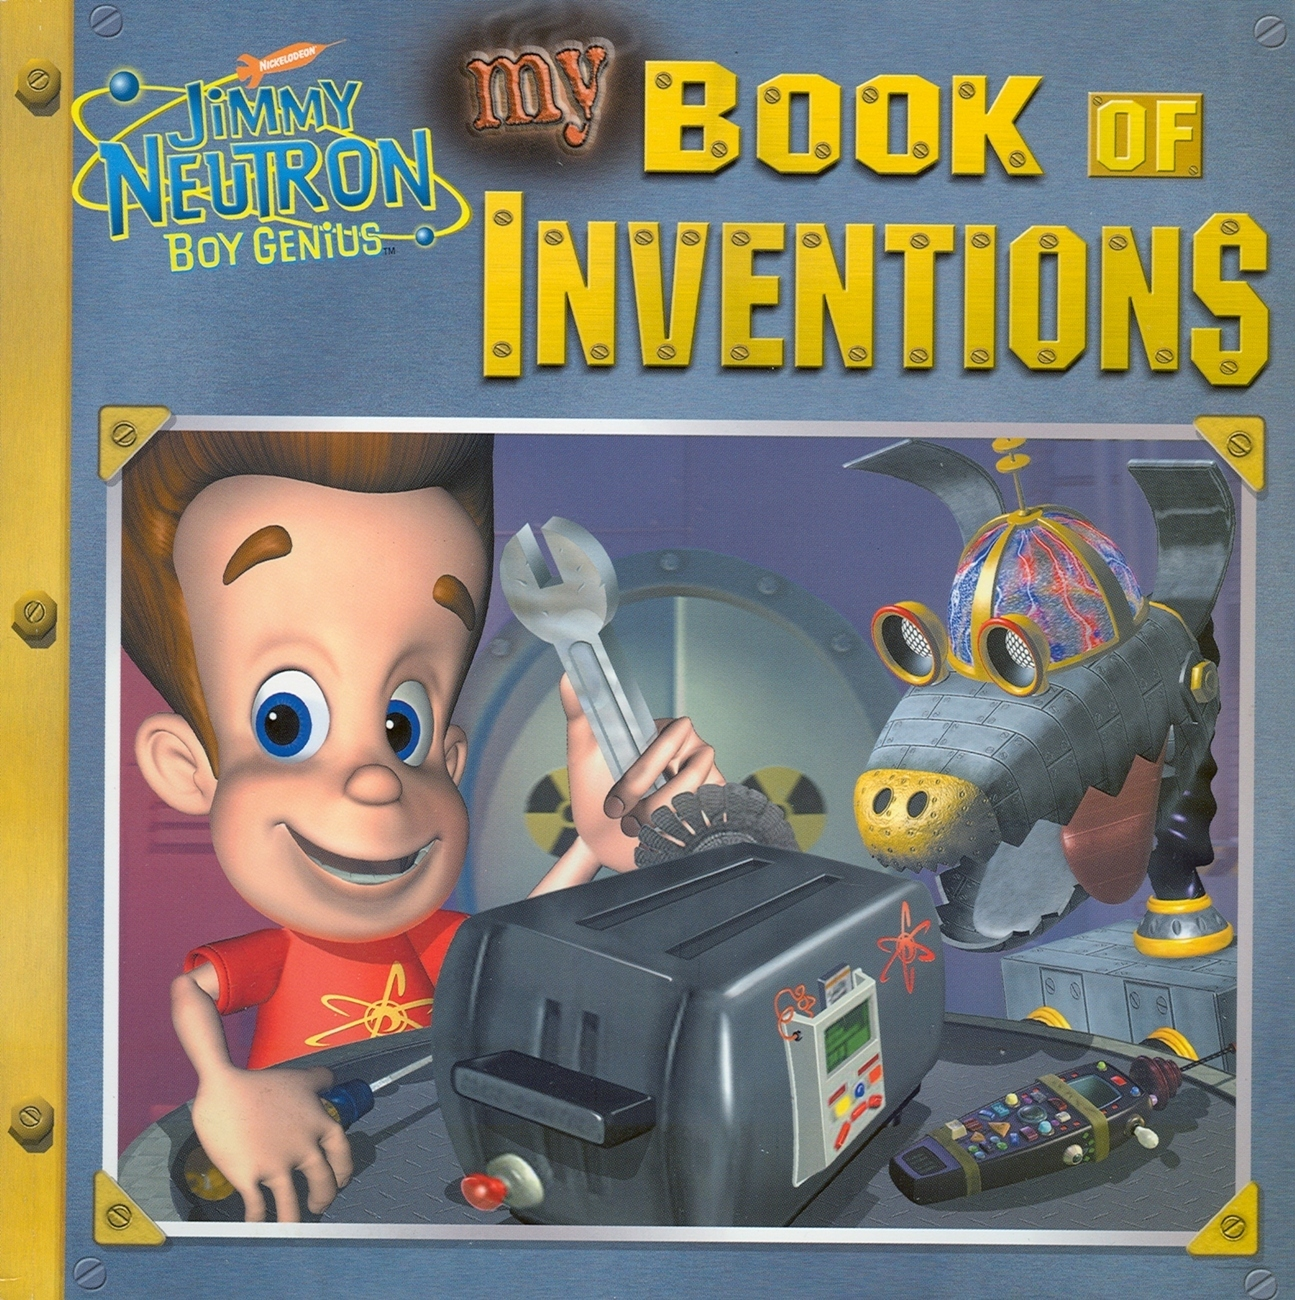 My Book of Inventions: JIMMY NEURON-BOY GENIUS